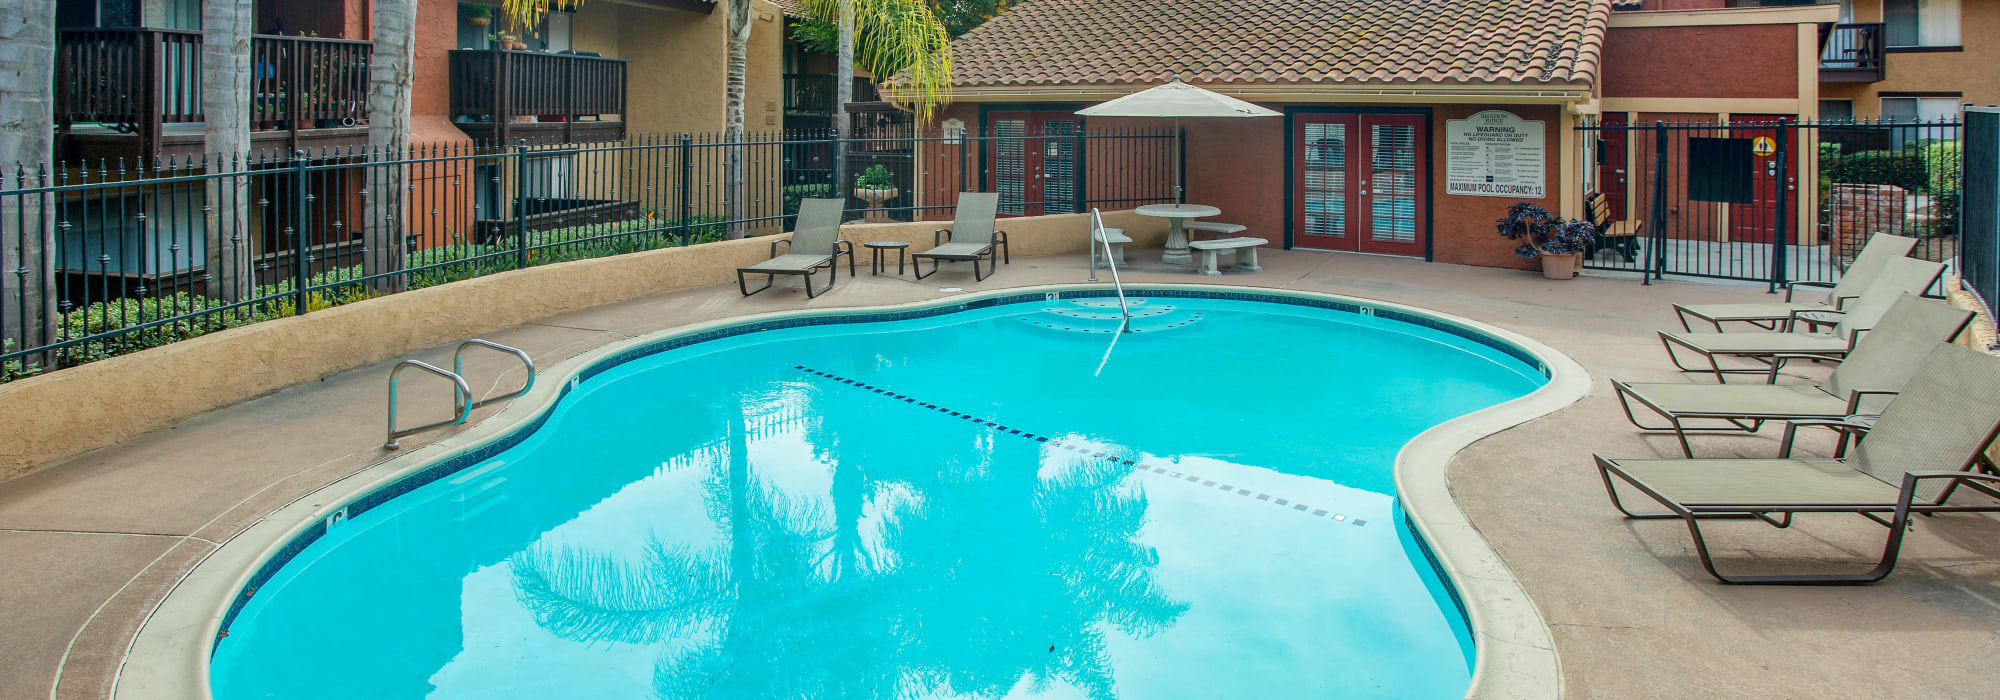 Resident Portal at Shadow Ridge Apartments in Oceanside, California